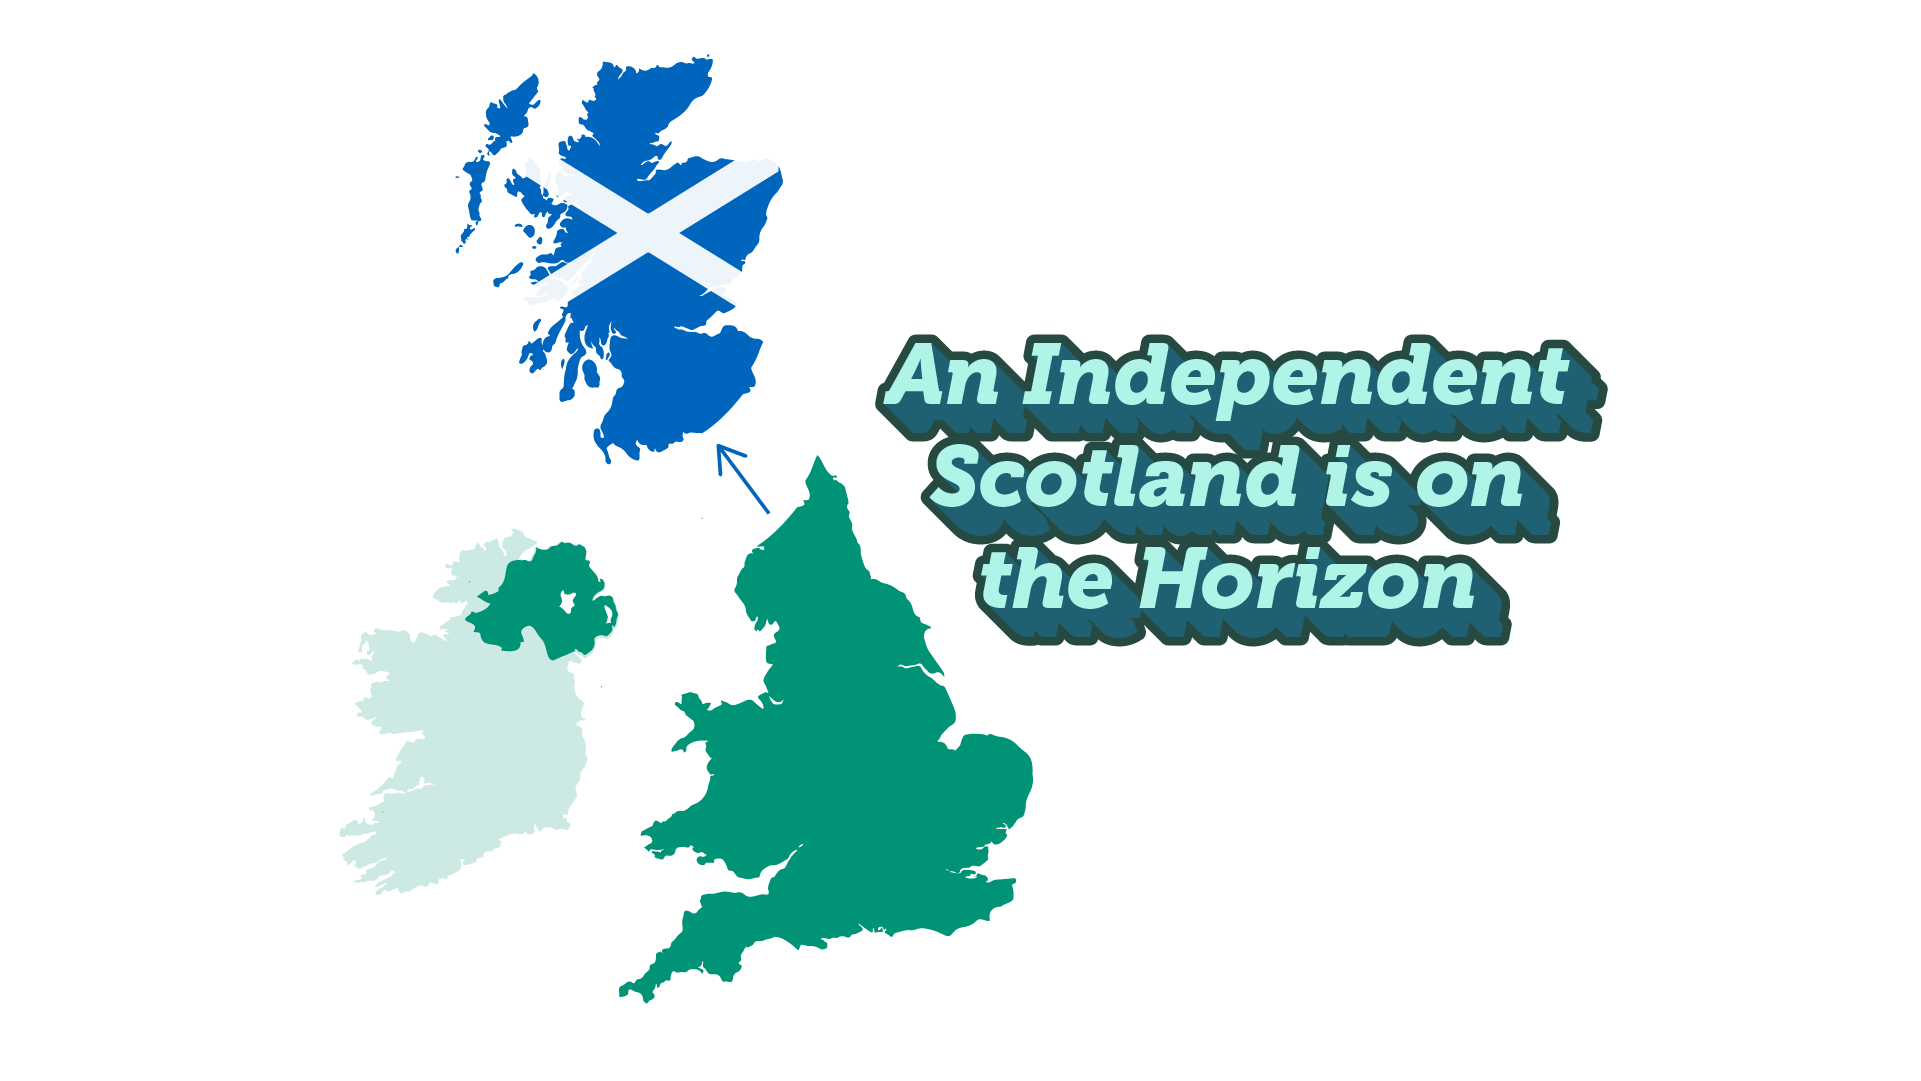 independent scotland is one the horizon indyref2 map depeicting scotland as independent from Britain